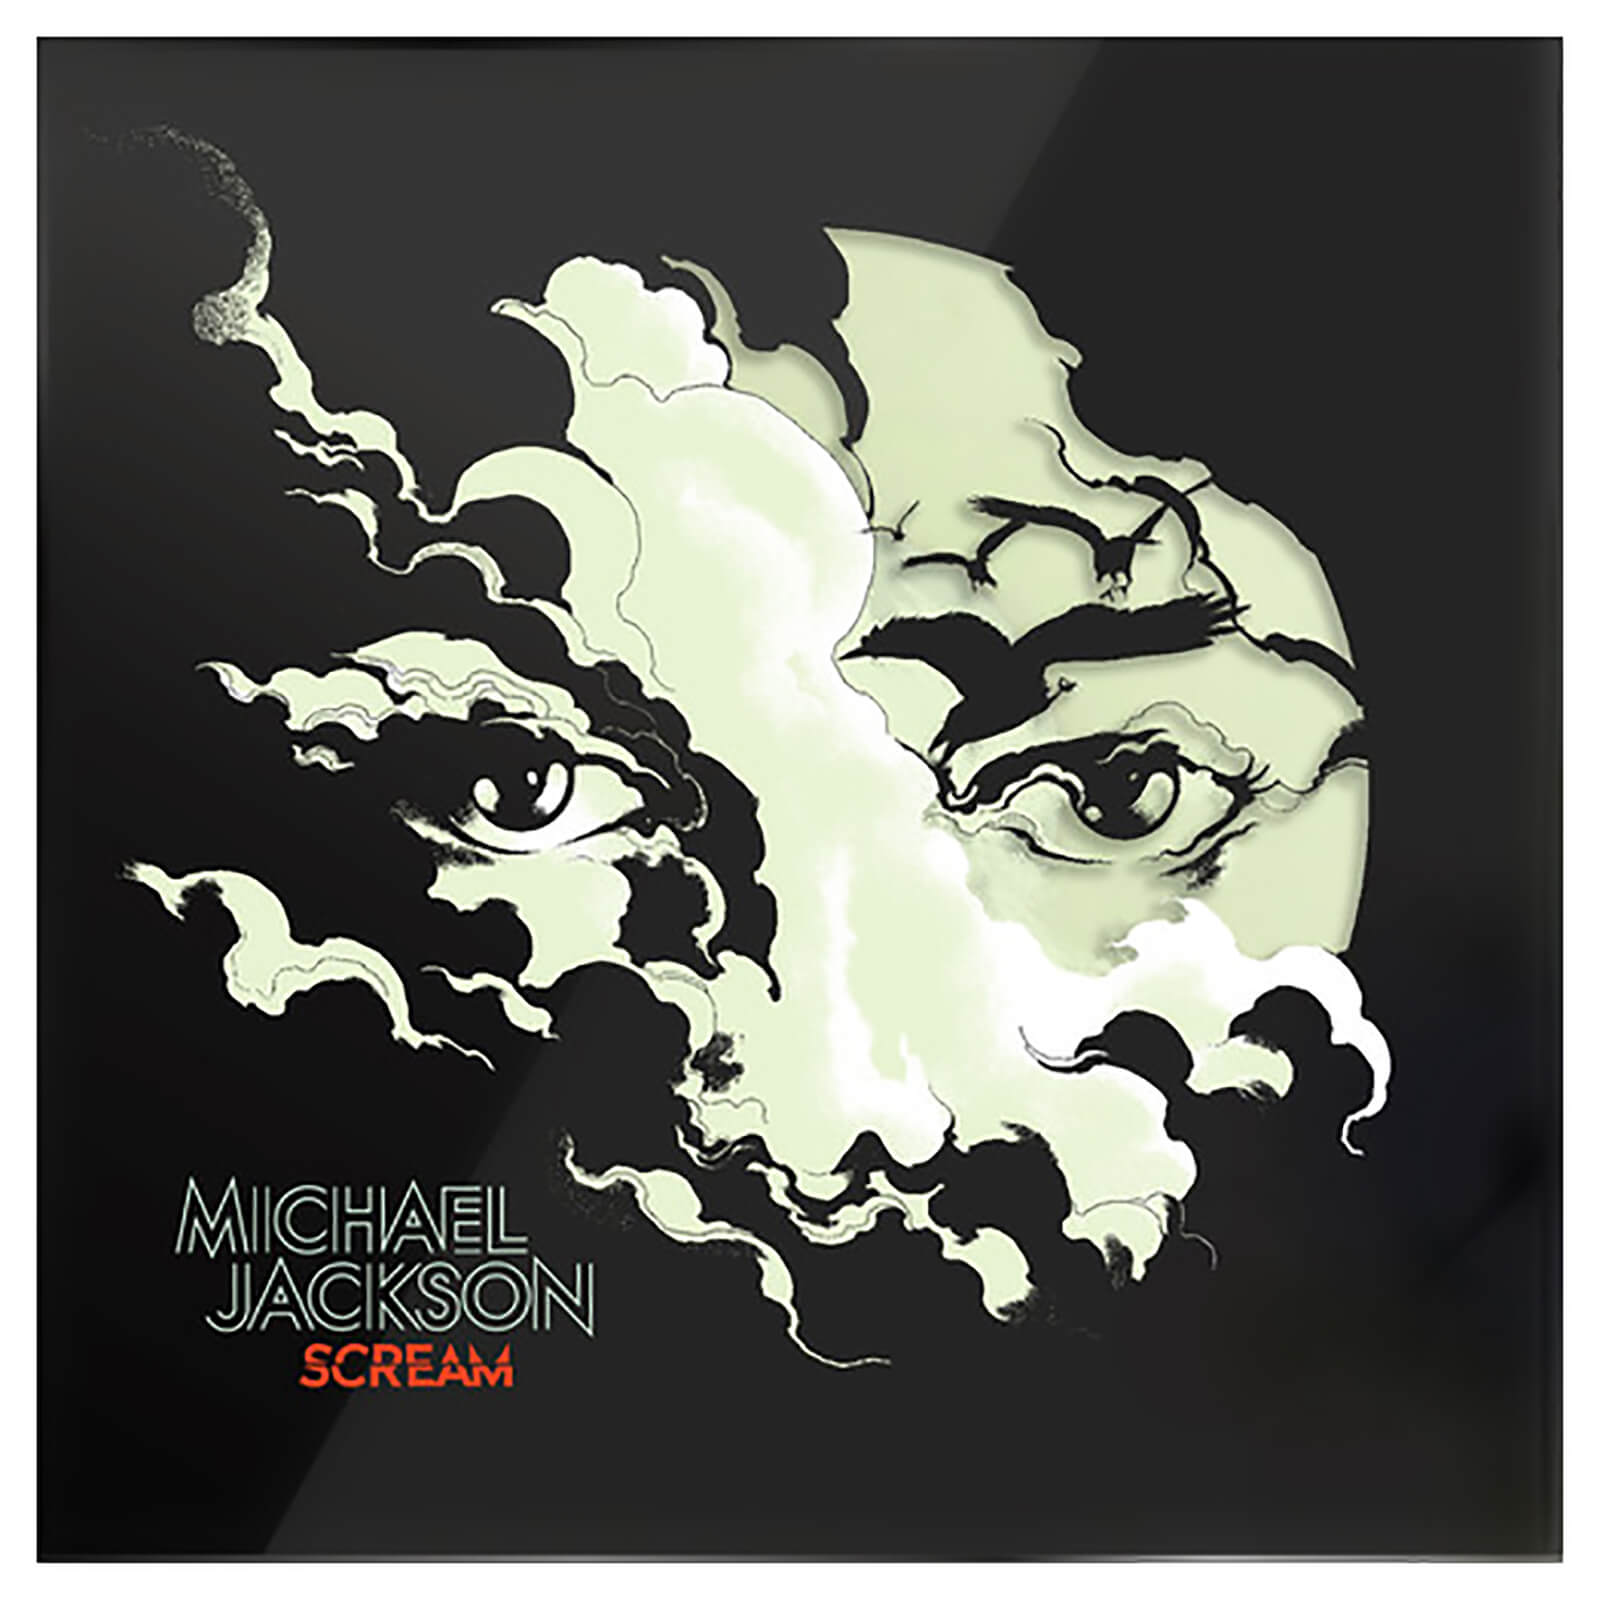 Michael Jackson - Scream - Vinyl